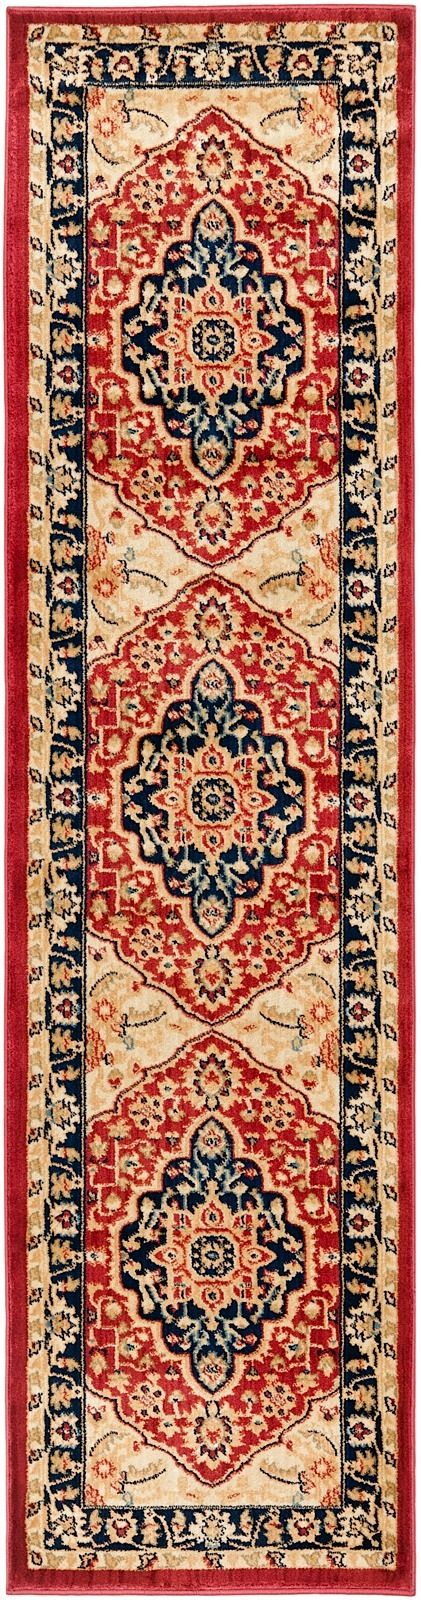 safavieh austin european area rug collection